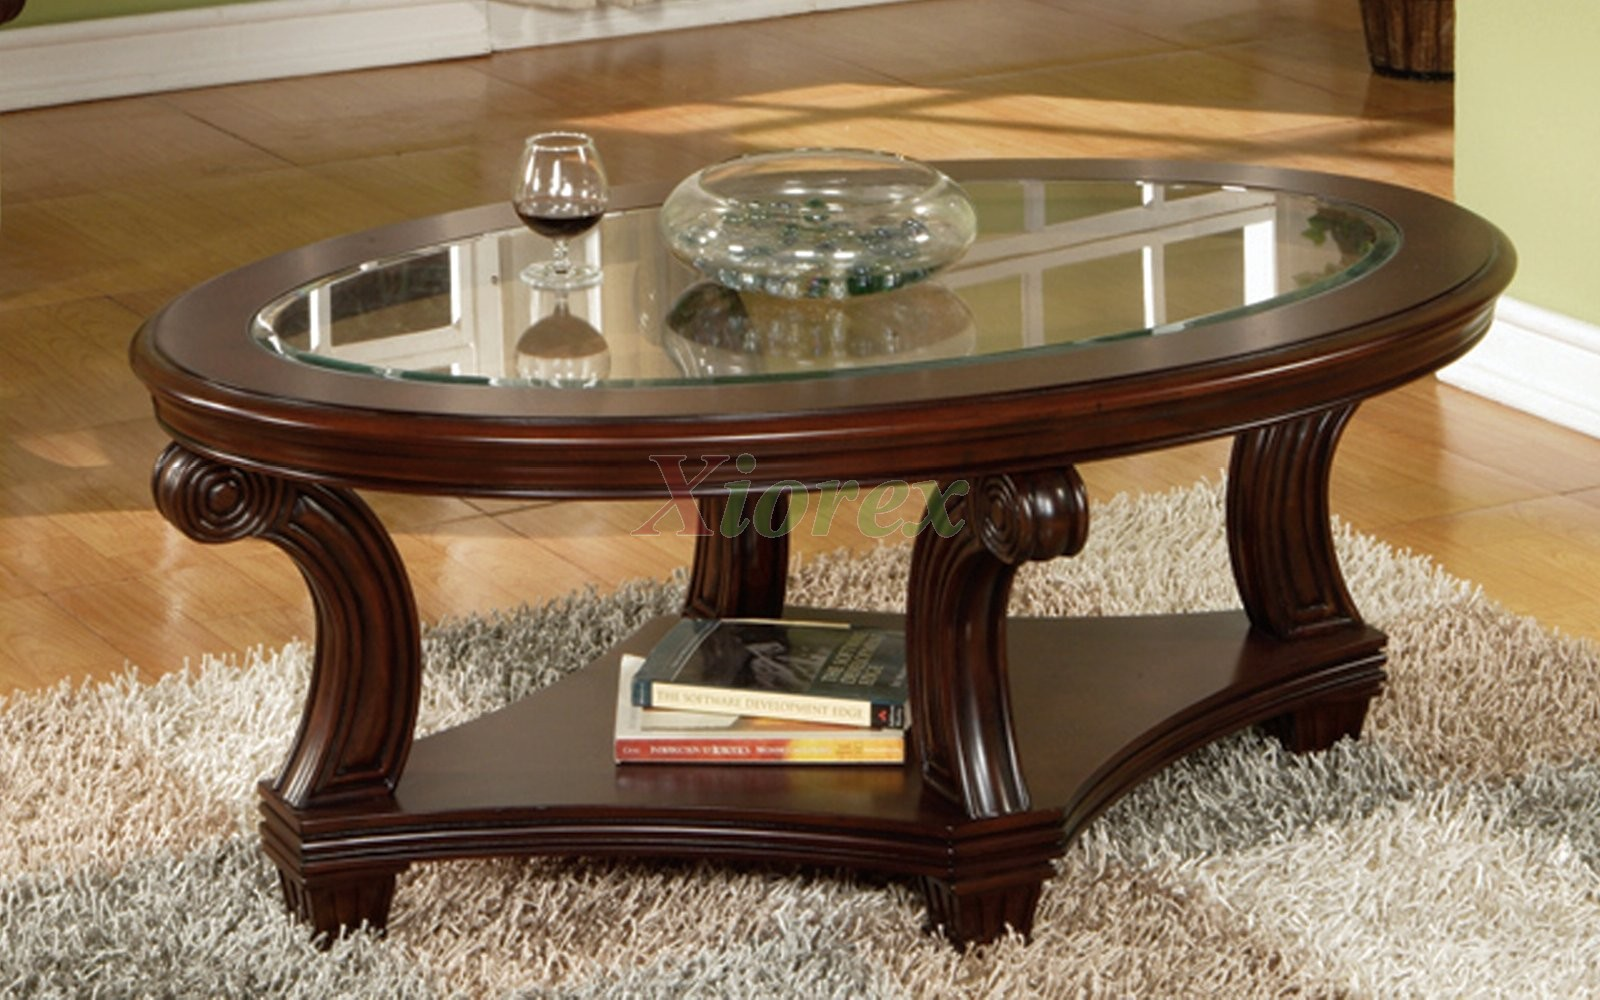 Coffee-Tables-Modern-Glass-Top-Best-Professionally-Designed-Simple-Woodworking-Projects-For-Cub-Scouts-Good-luck-to-all-those-who-try (Image 3 of 9)